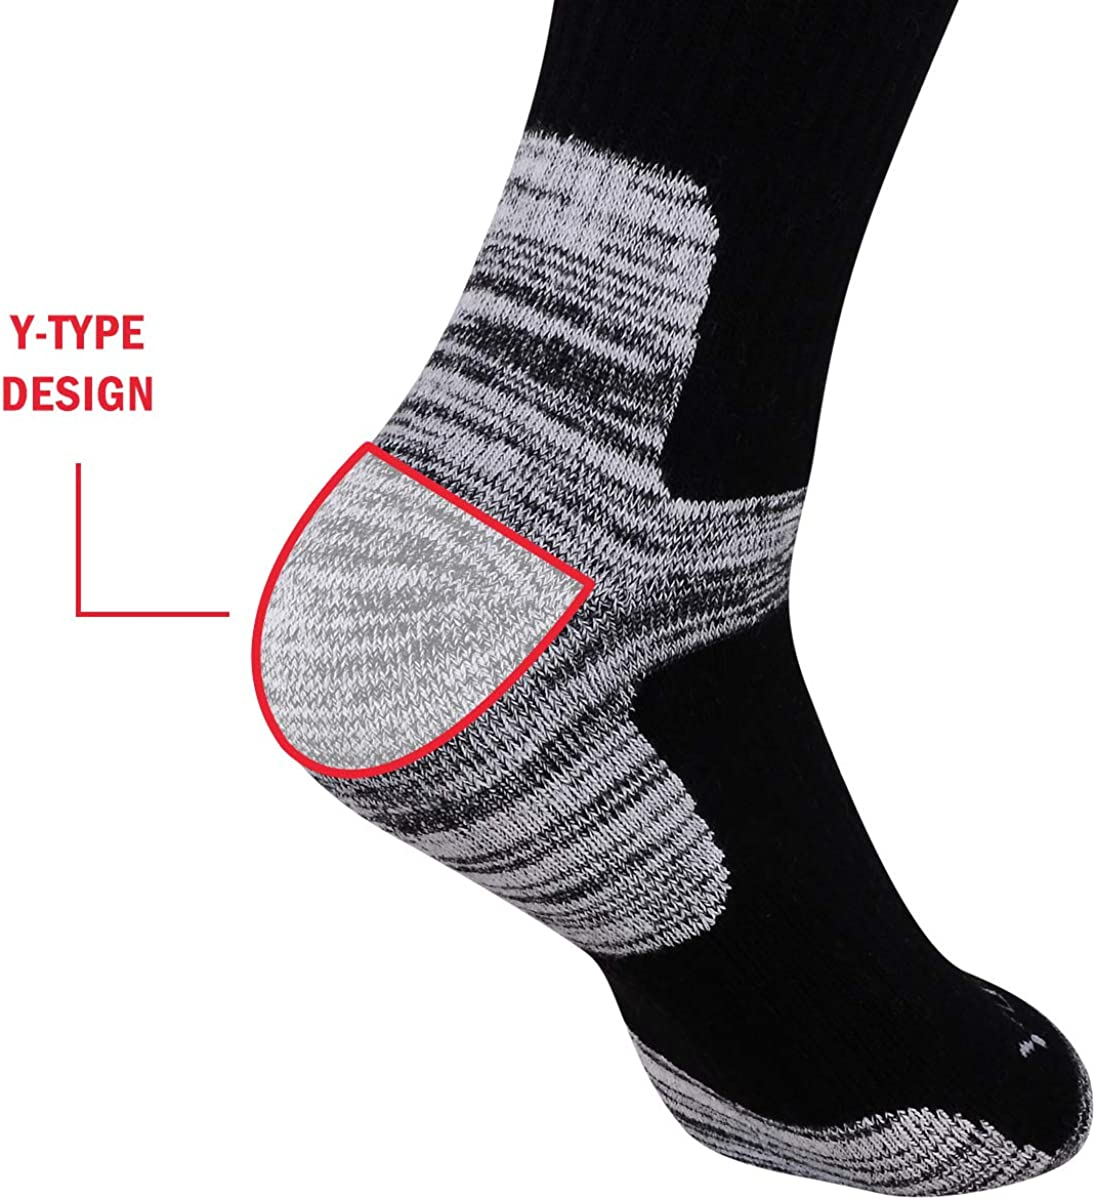 YUEDGE Mens 5 Pairs Wicking Breathable Cushion Anti Blister Casual Crew Socks Multi Performance Hiking Trekking Walking Athletic Socks